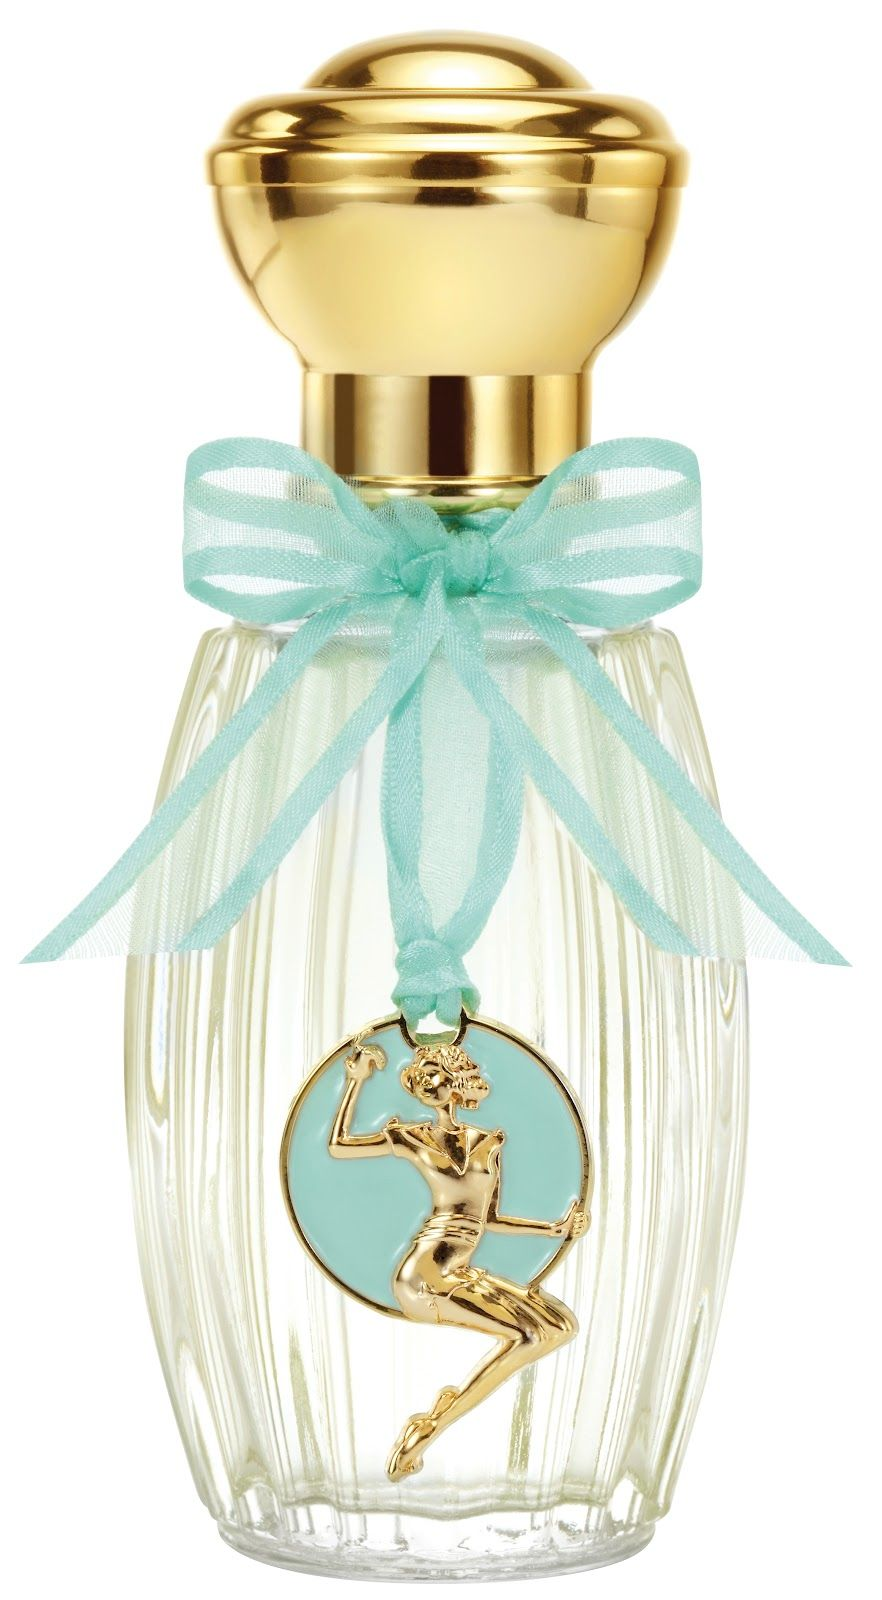 petite Cherie - Annick Goutal...♥ the bottle and the perfume.